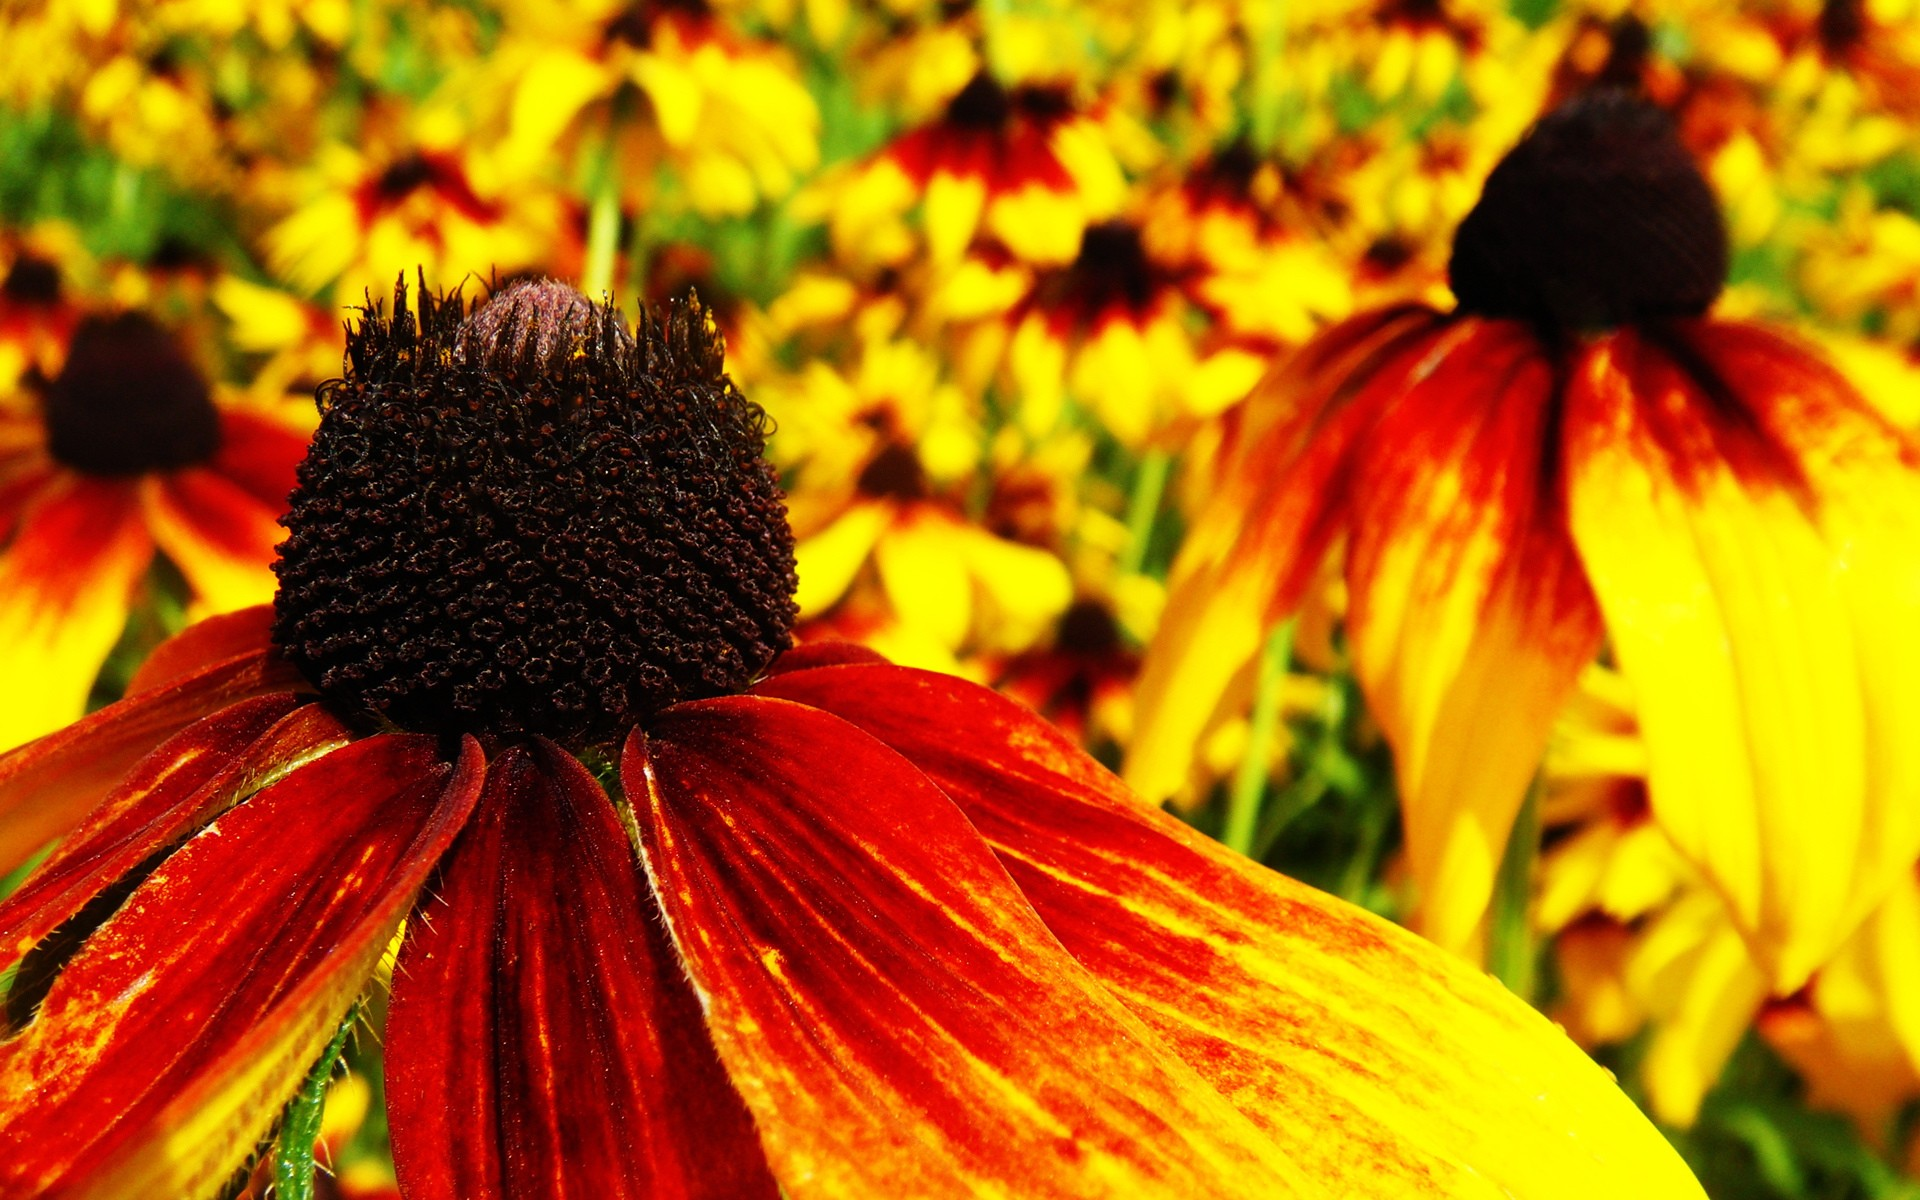 nature red flowers yellow flower petals coneflowers wallpaper background